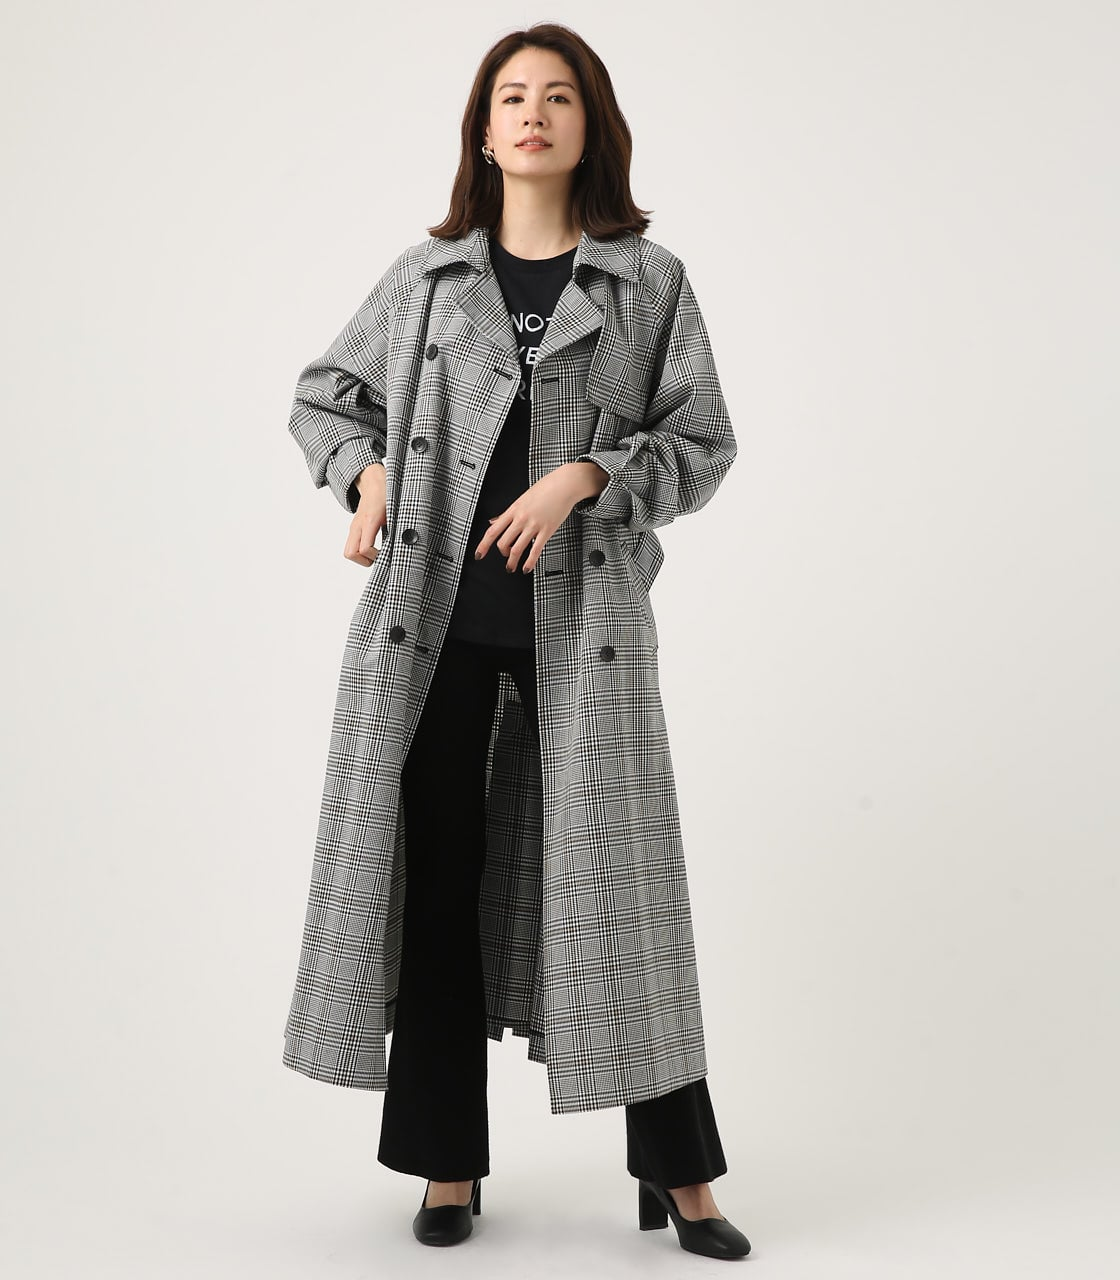 【AZUL BY MOUSSY】VOLUME SLEEVE LONG TRENCH COAT 詳細画像 柄BLK 1